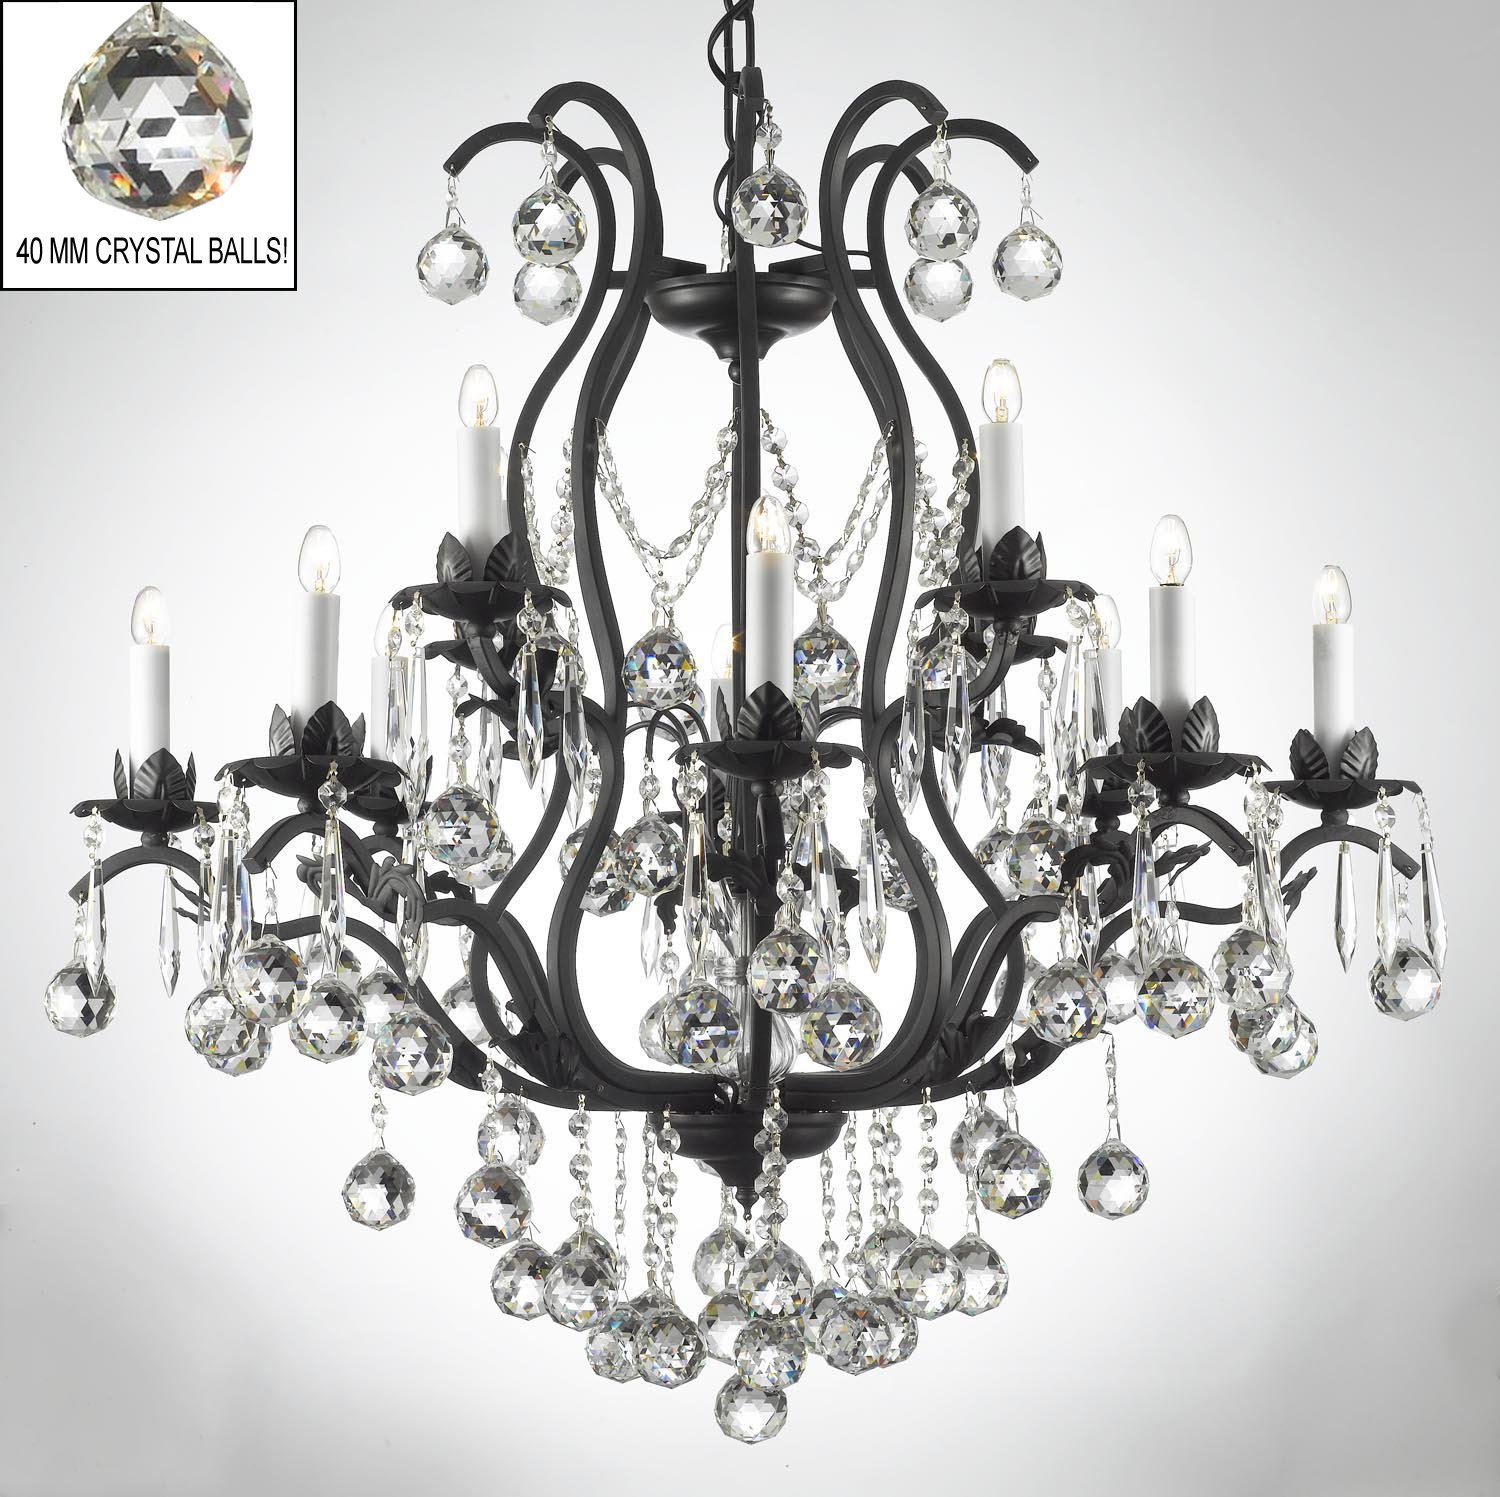 lighting chandelier light world and iron product by glow crystal old